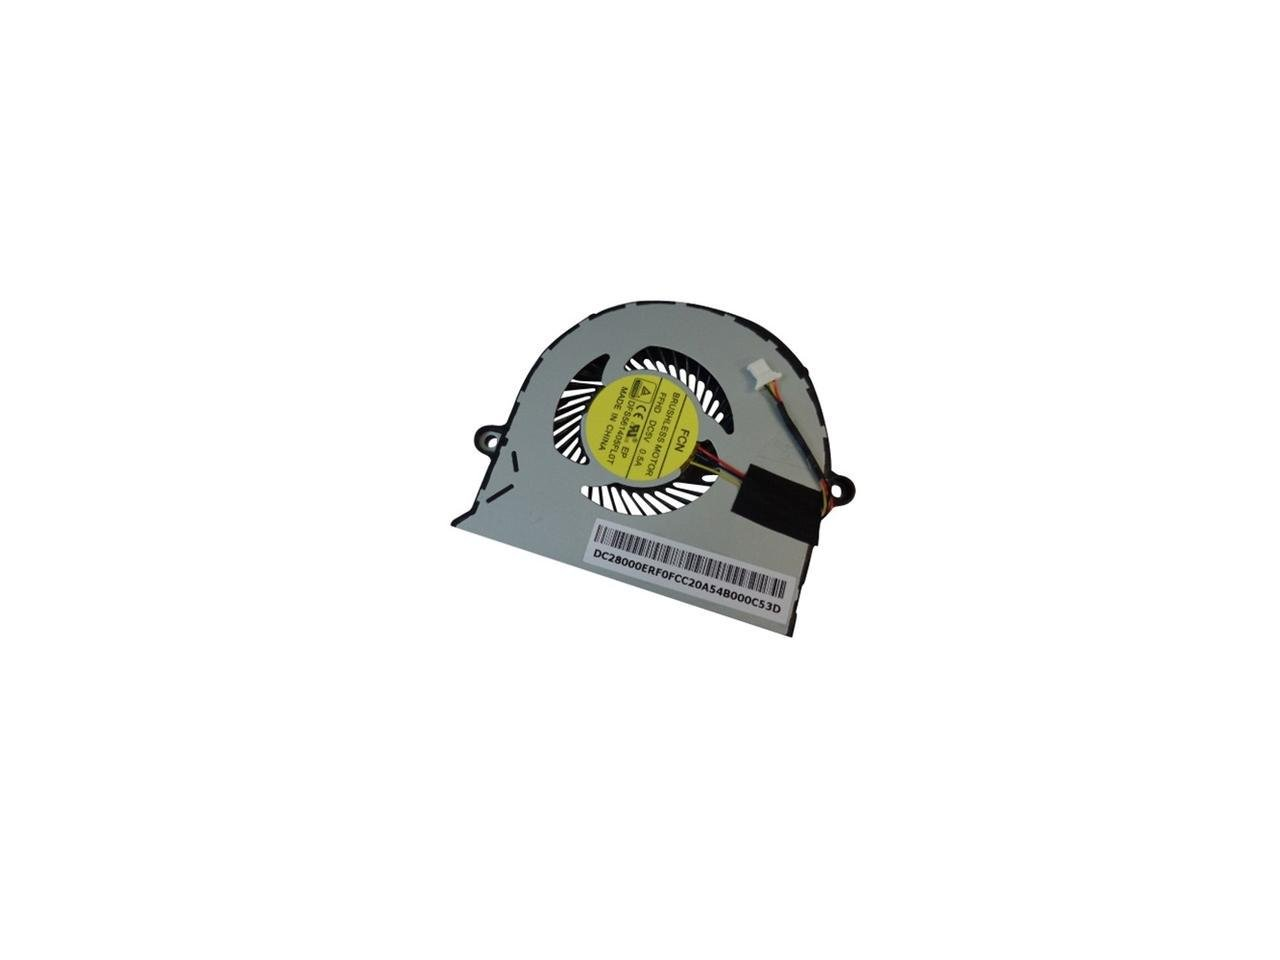 New Laptop CPU Cooling Fan For Acer Aspire E5-511 E5-511G E5-511P E5-521 E5-521G E5-531 E5-551 E5-551G E5-571 E5-571G E5-571P E5-571PG V3-572 V3-572G V3-572P V3-572PG TravelMate P256-M P256-MG Series